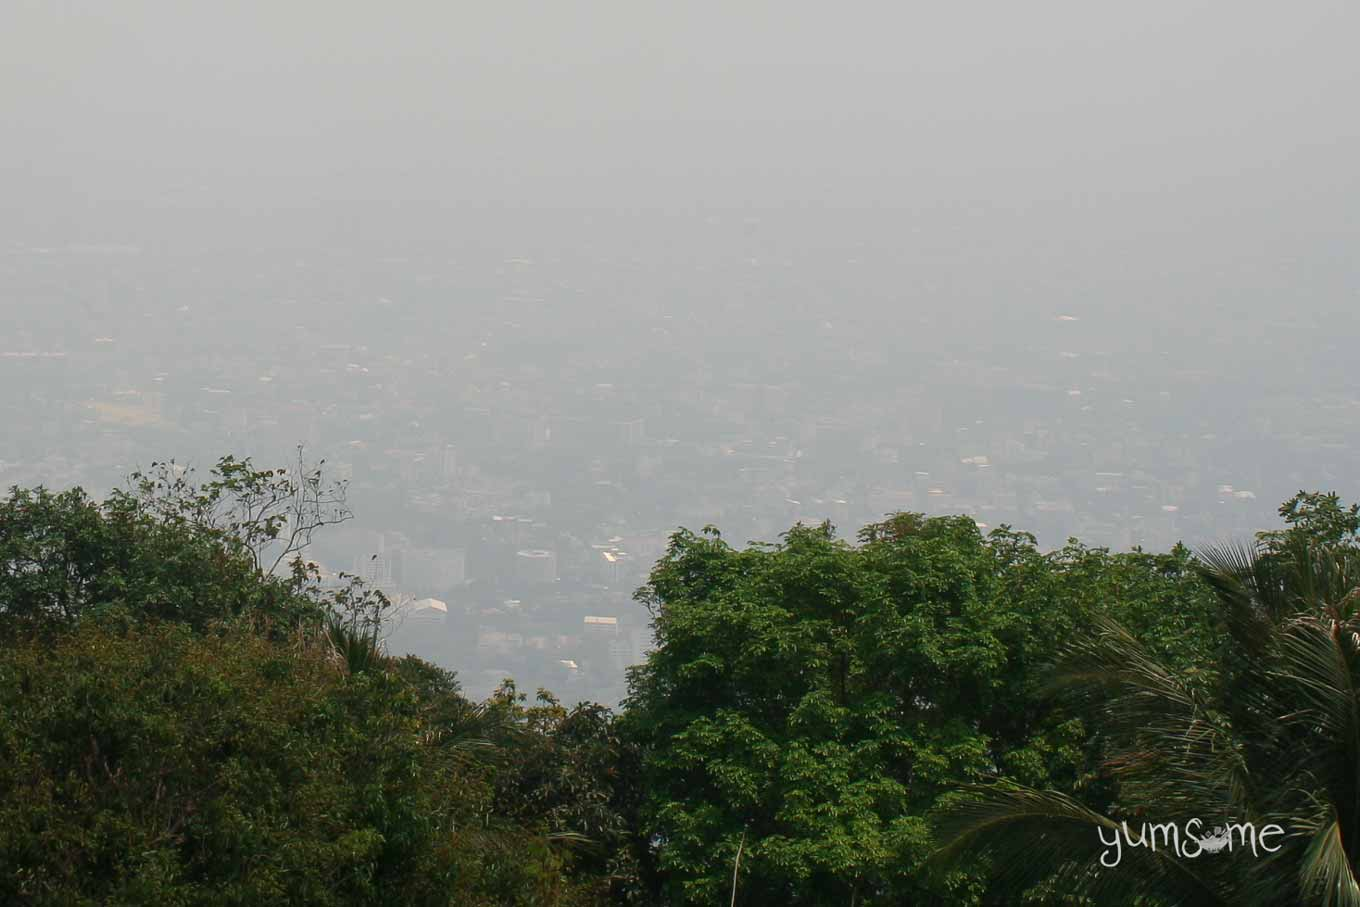 Smog from the burning season obscuring the view over Chiang Mai.